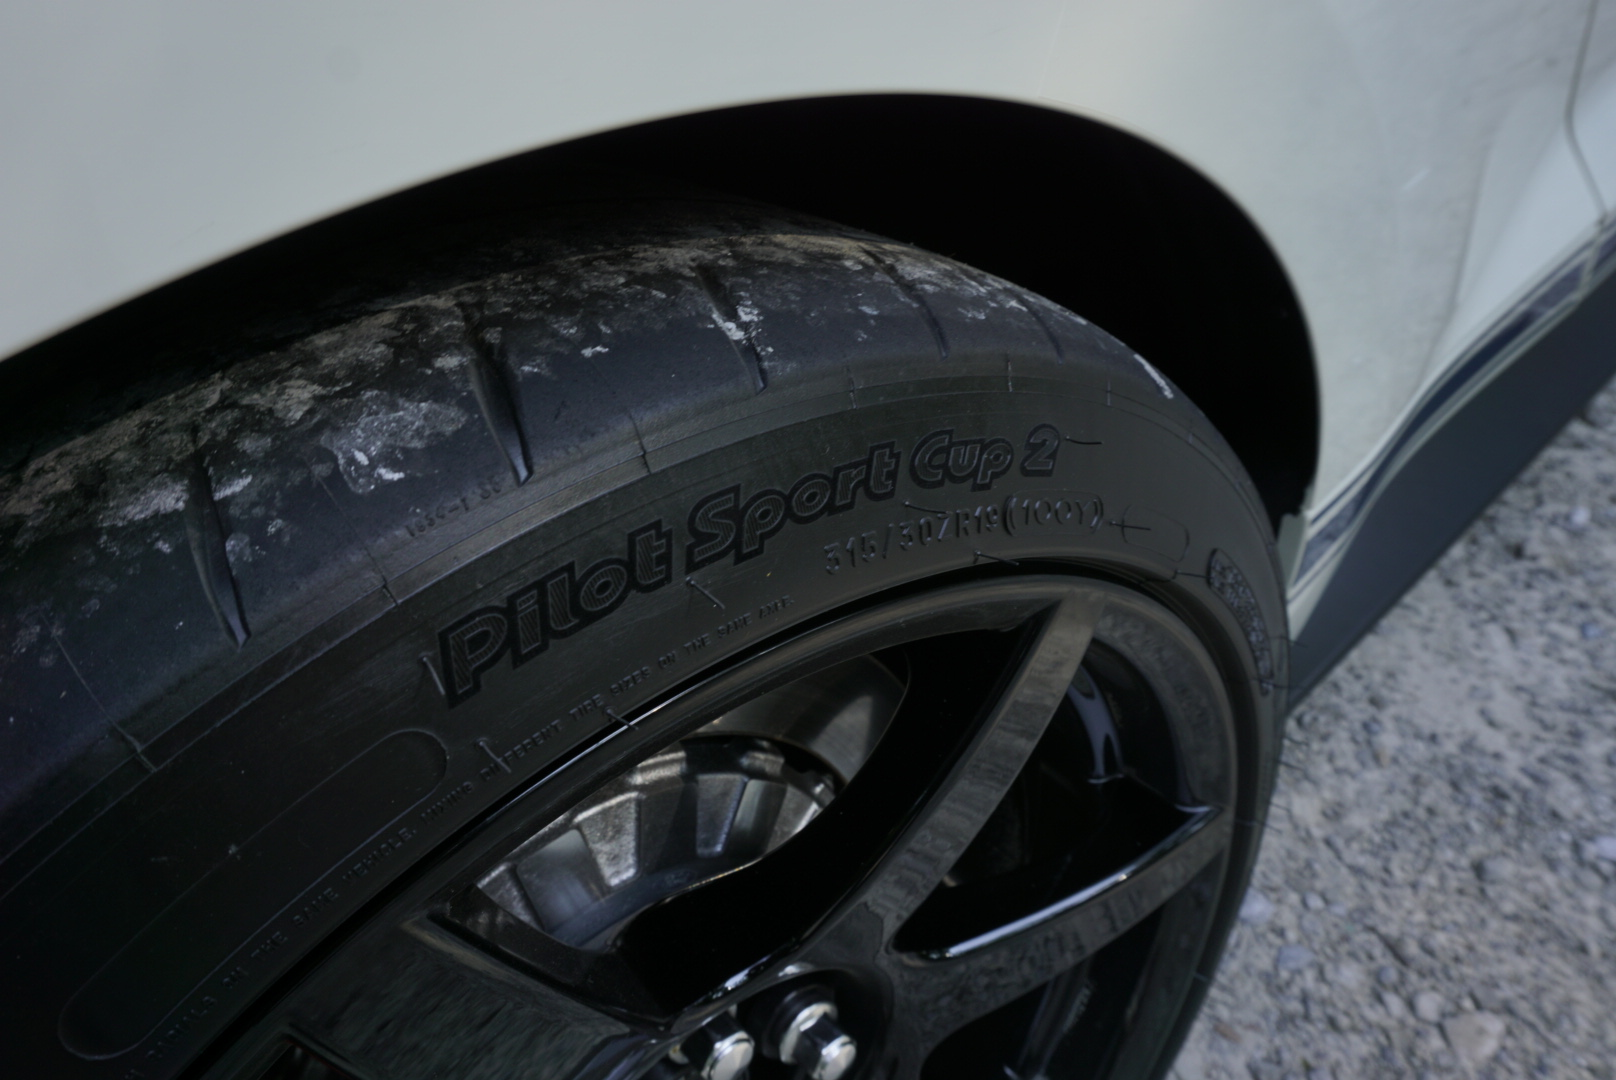 2020-Shelby-GT350R-Heritage-Edition pilot sport cup 2 tire